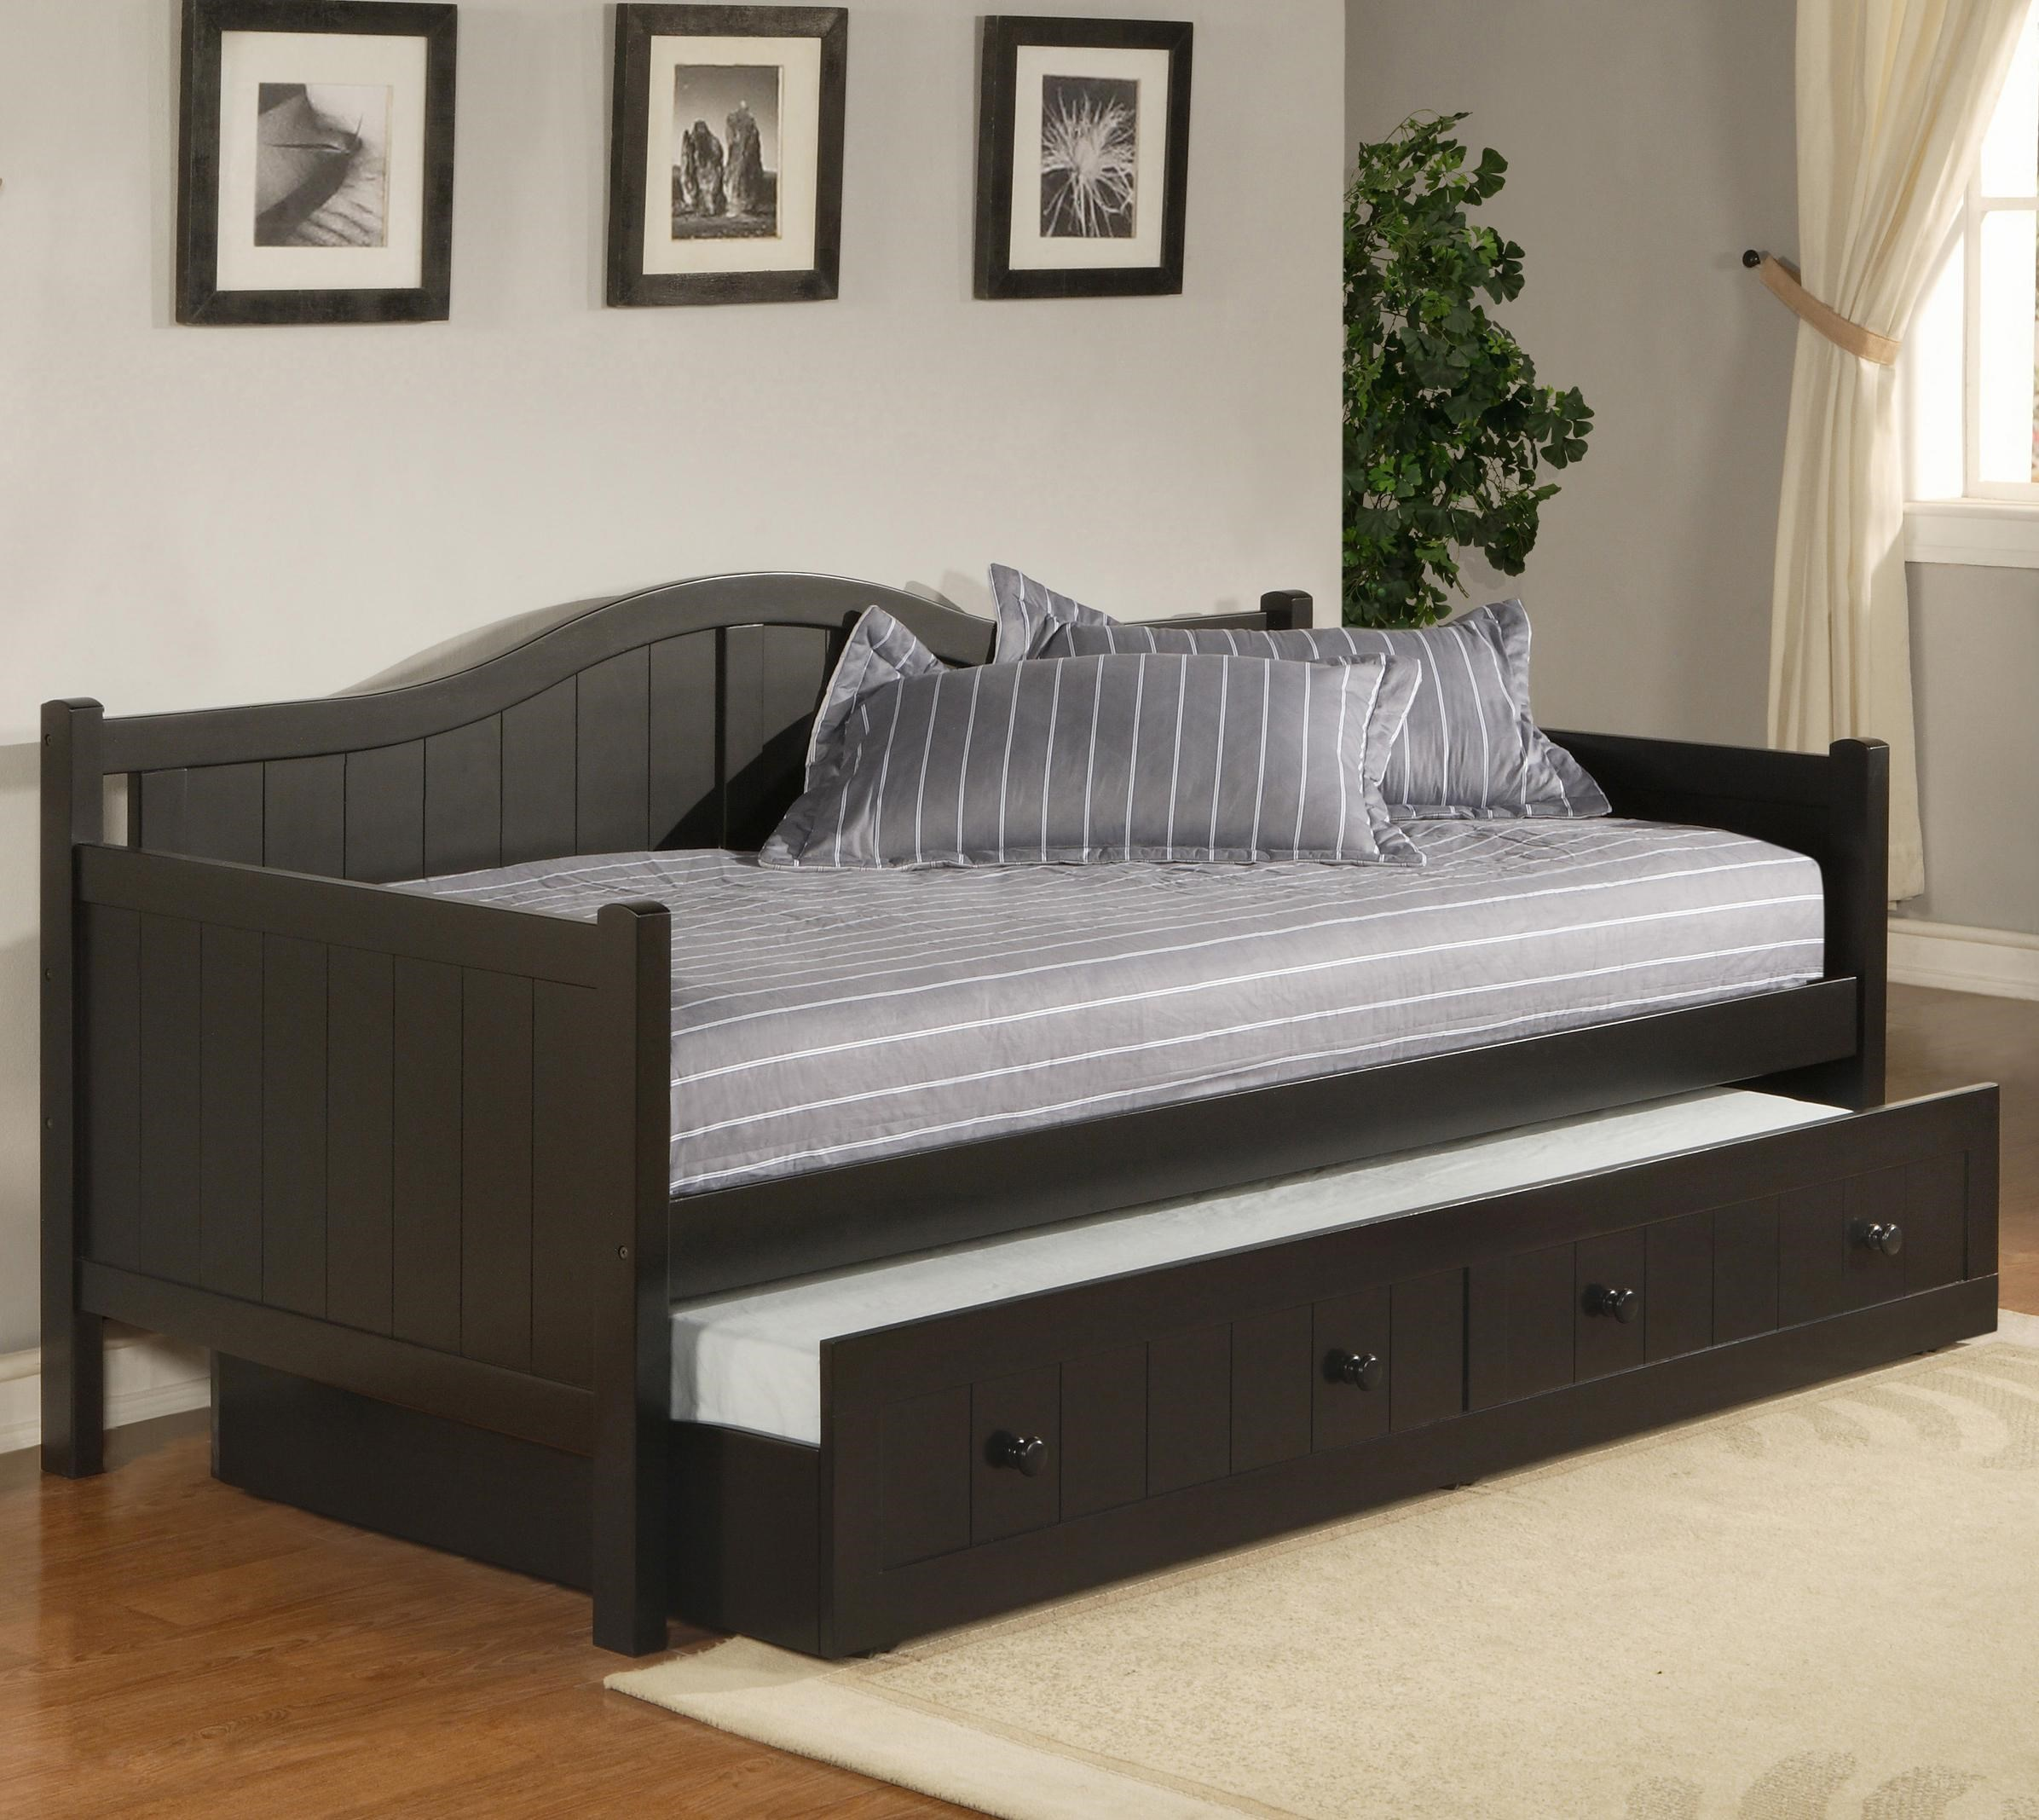 Daybeds Twin Staci Daybed with Trundle  Rotmans  Daybed Worcester  500 x 500